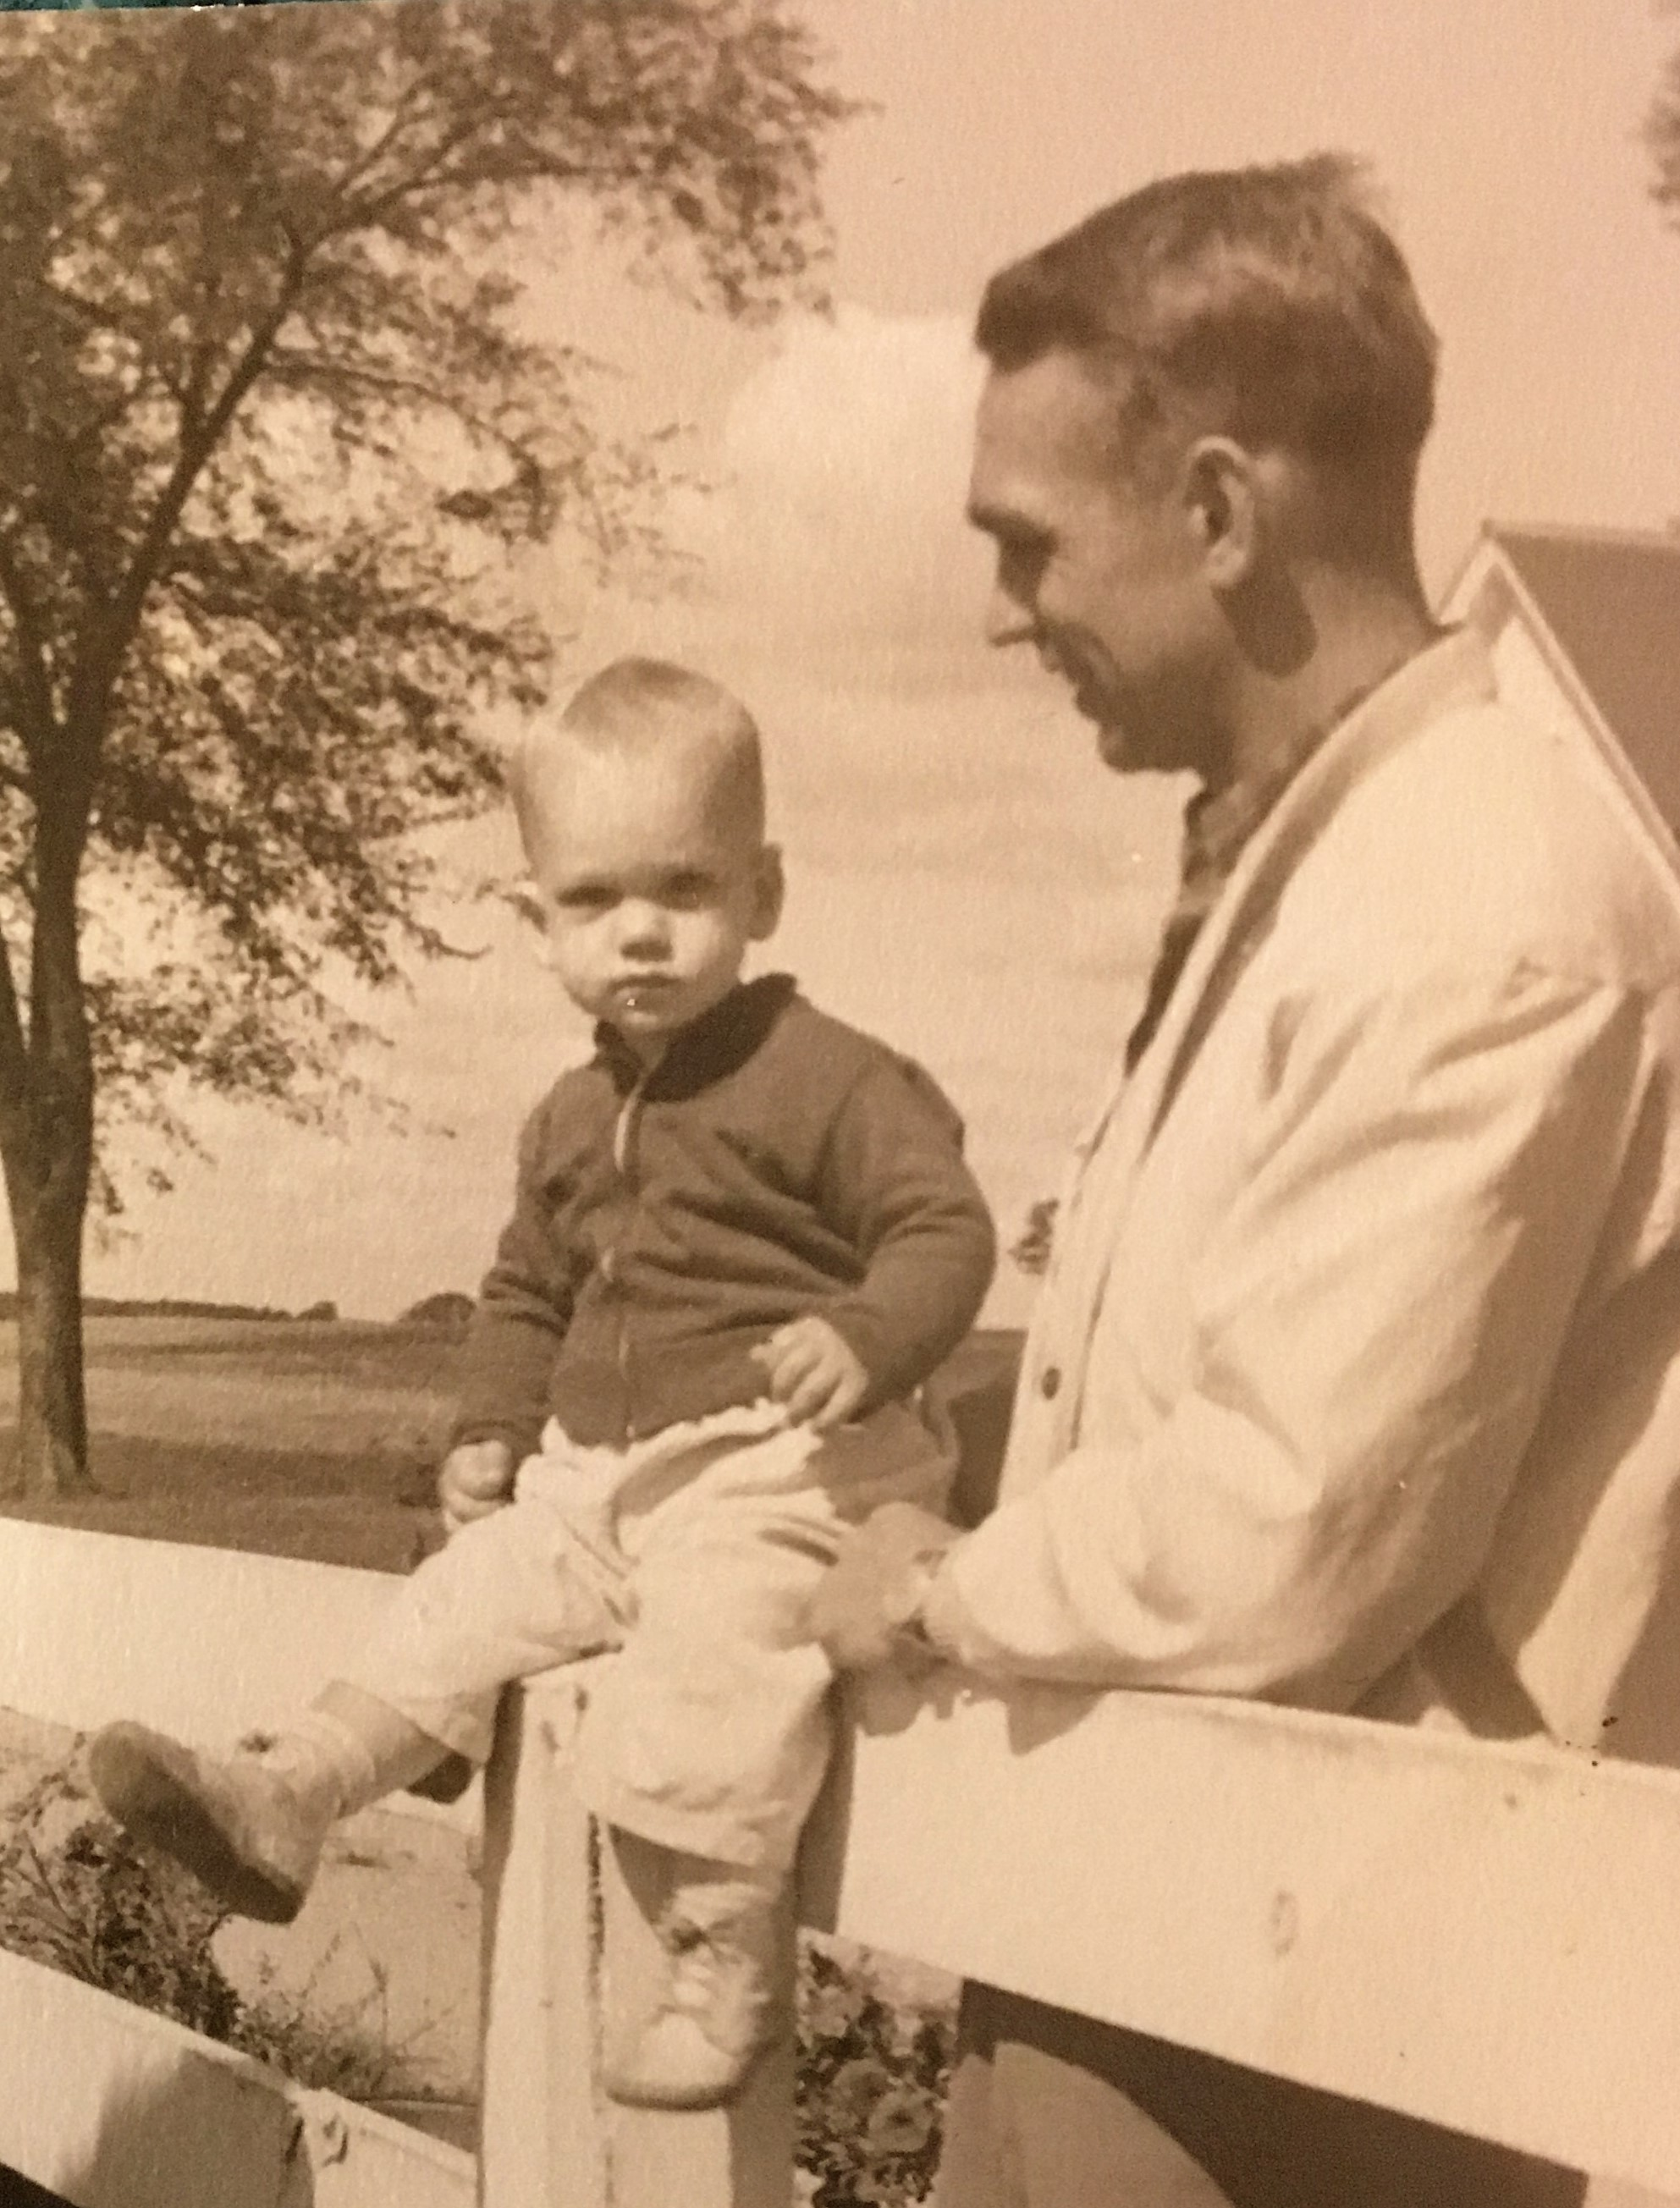 James E. Palm, missionary in the Philippines, with his son and future mission co-worker, Cobbie